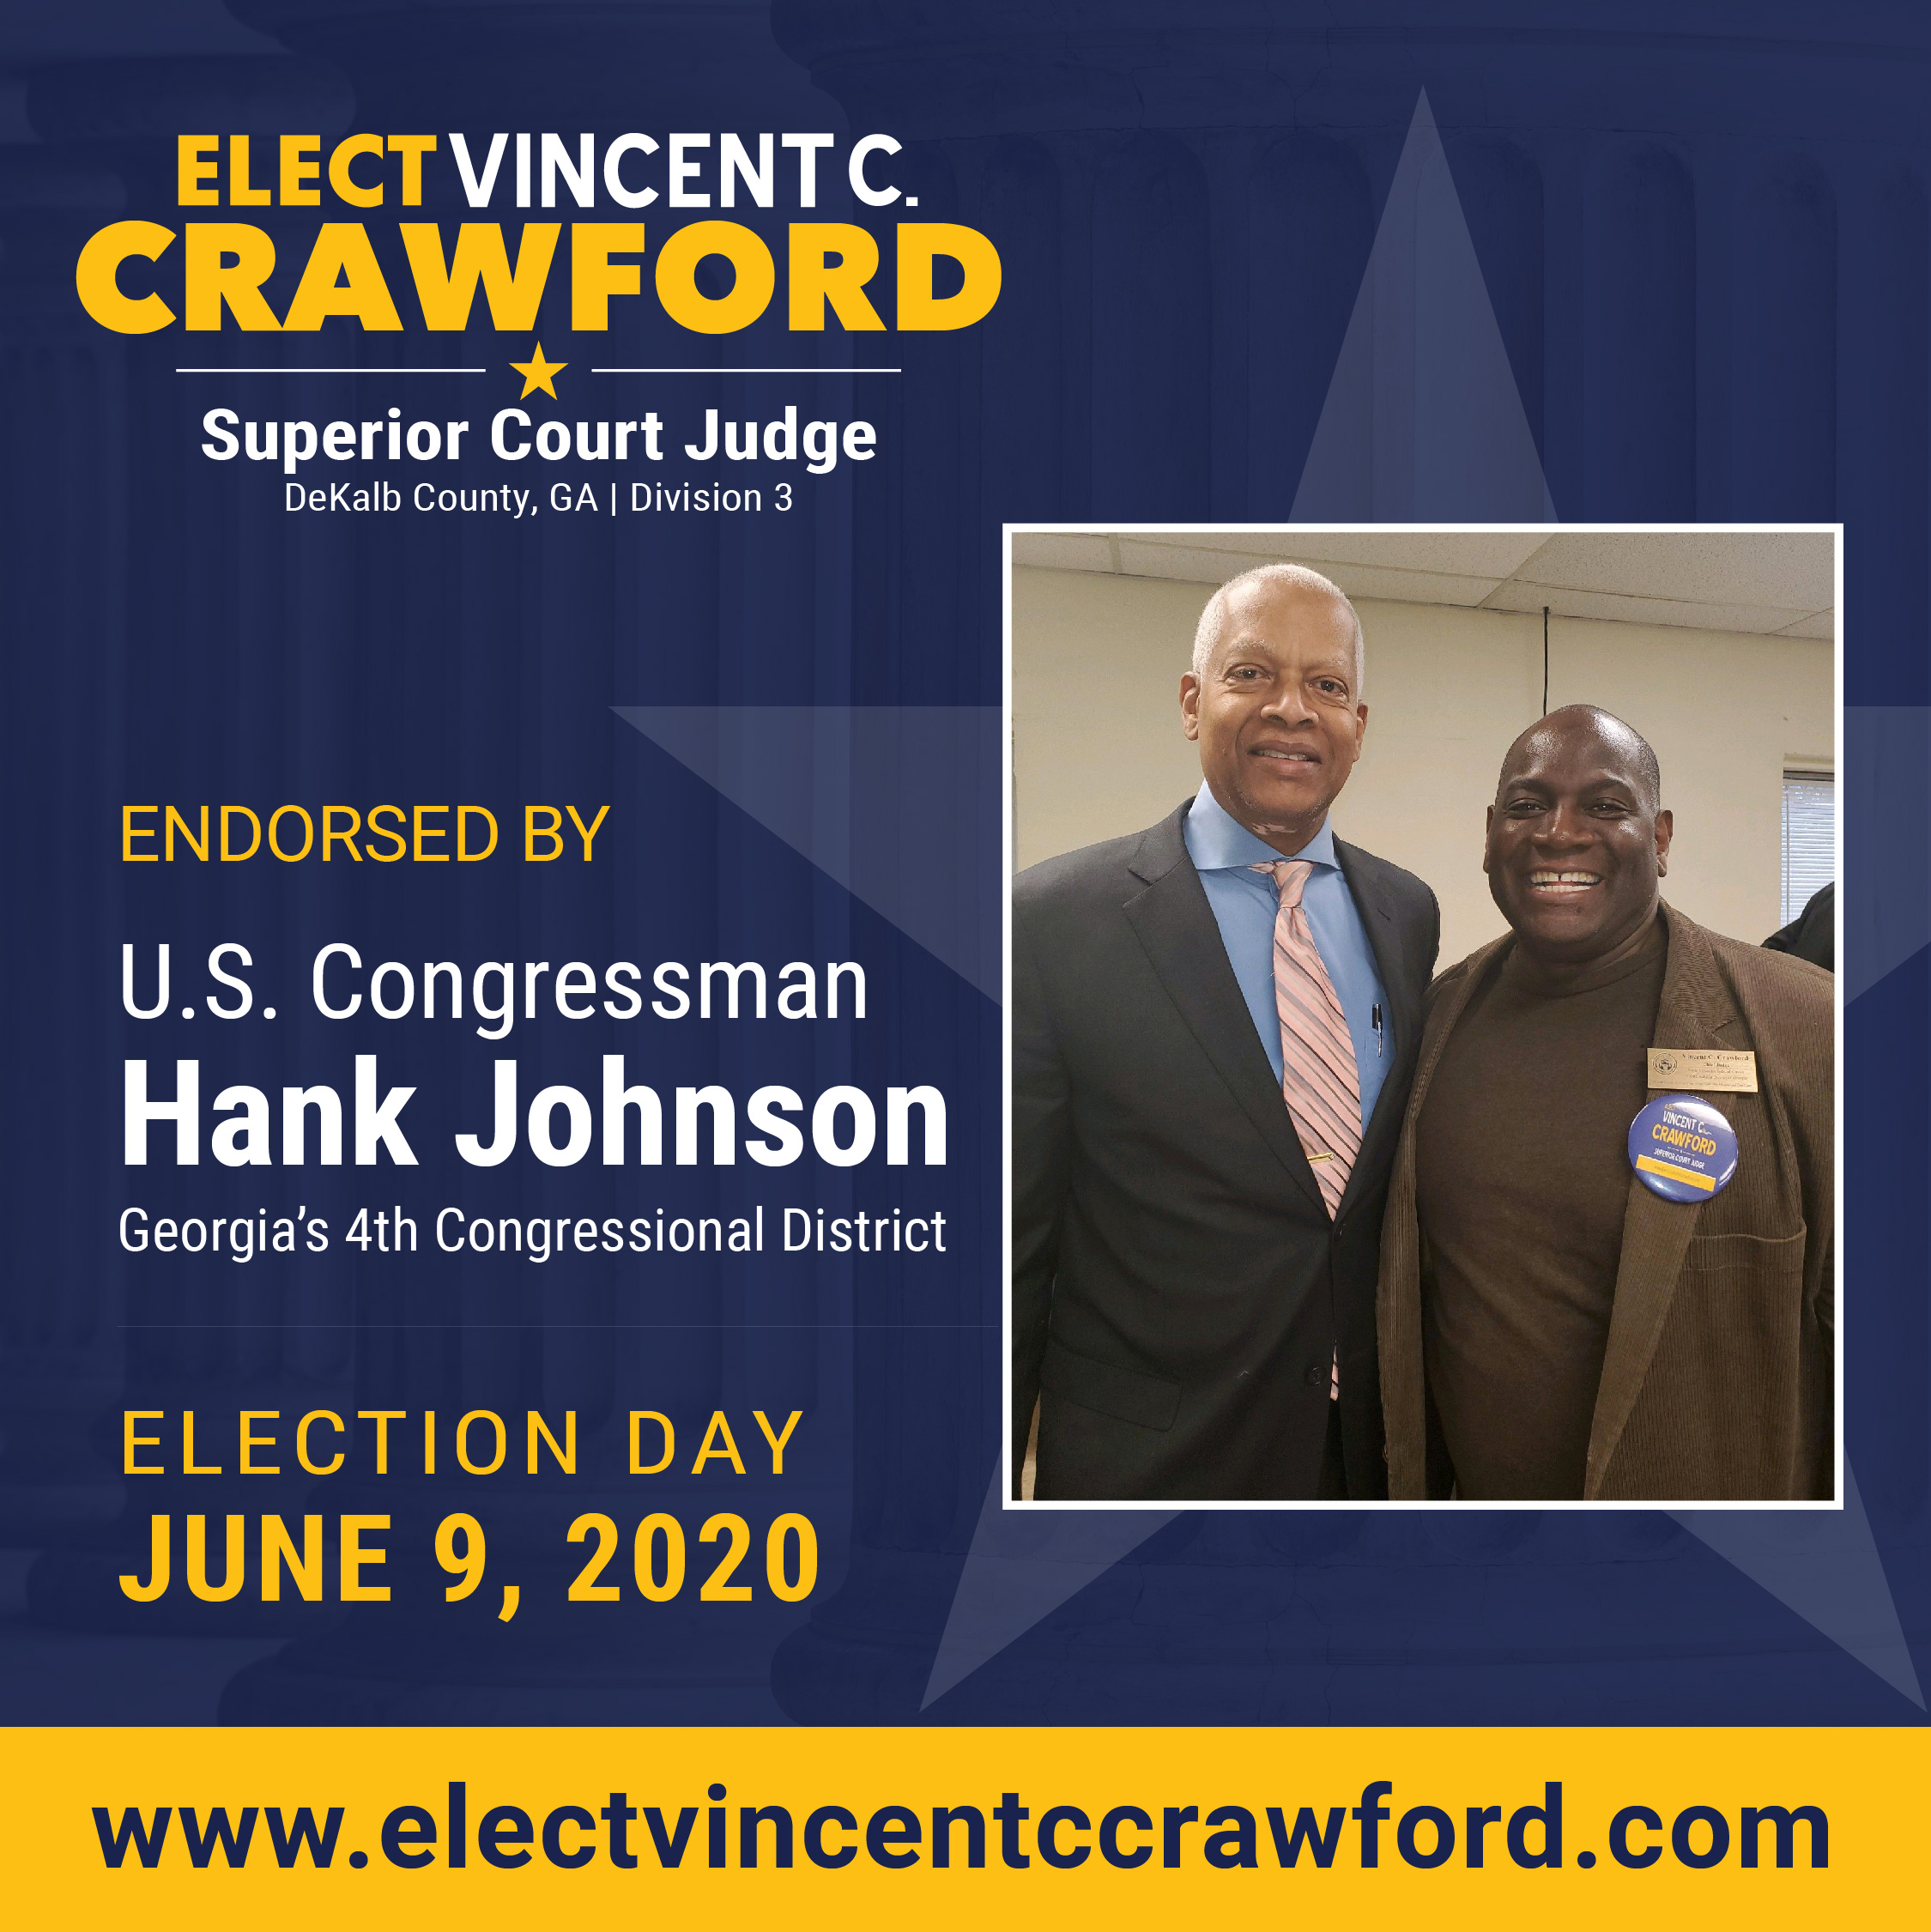 Judge Crawford receives endorsement from U.S. Congressman Hank Johnson